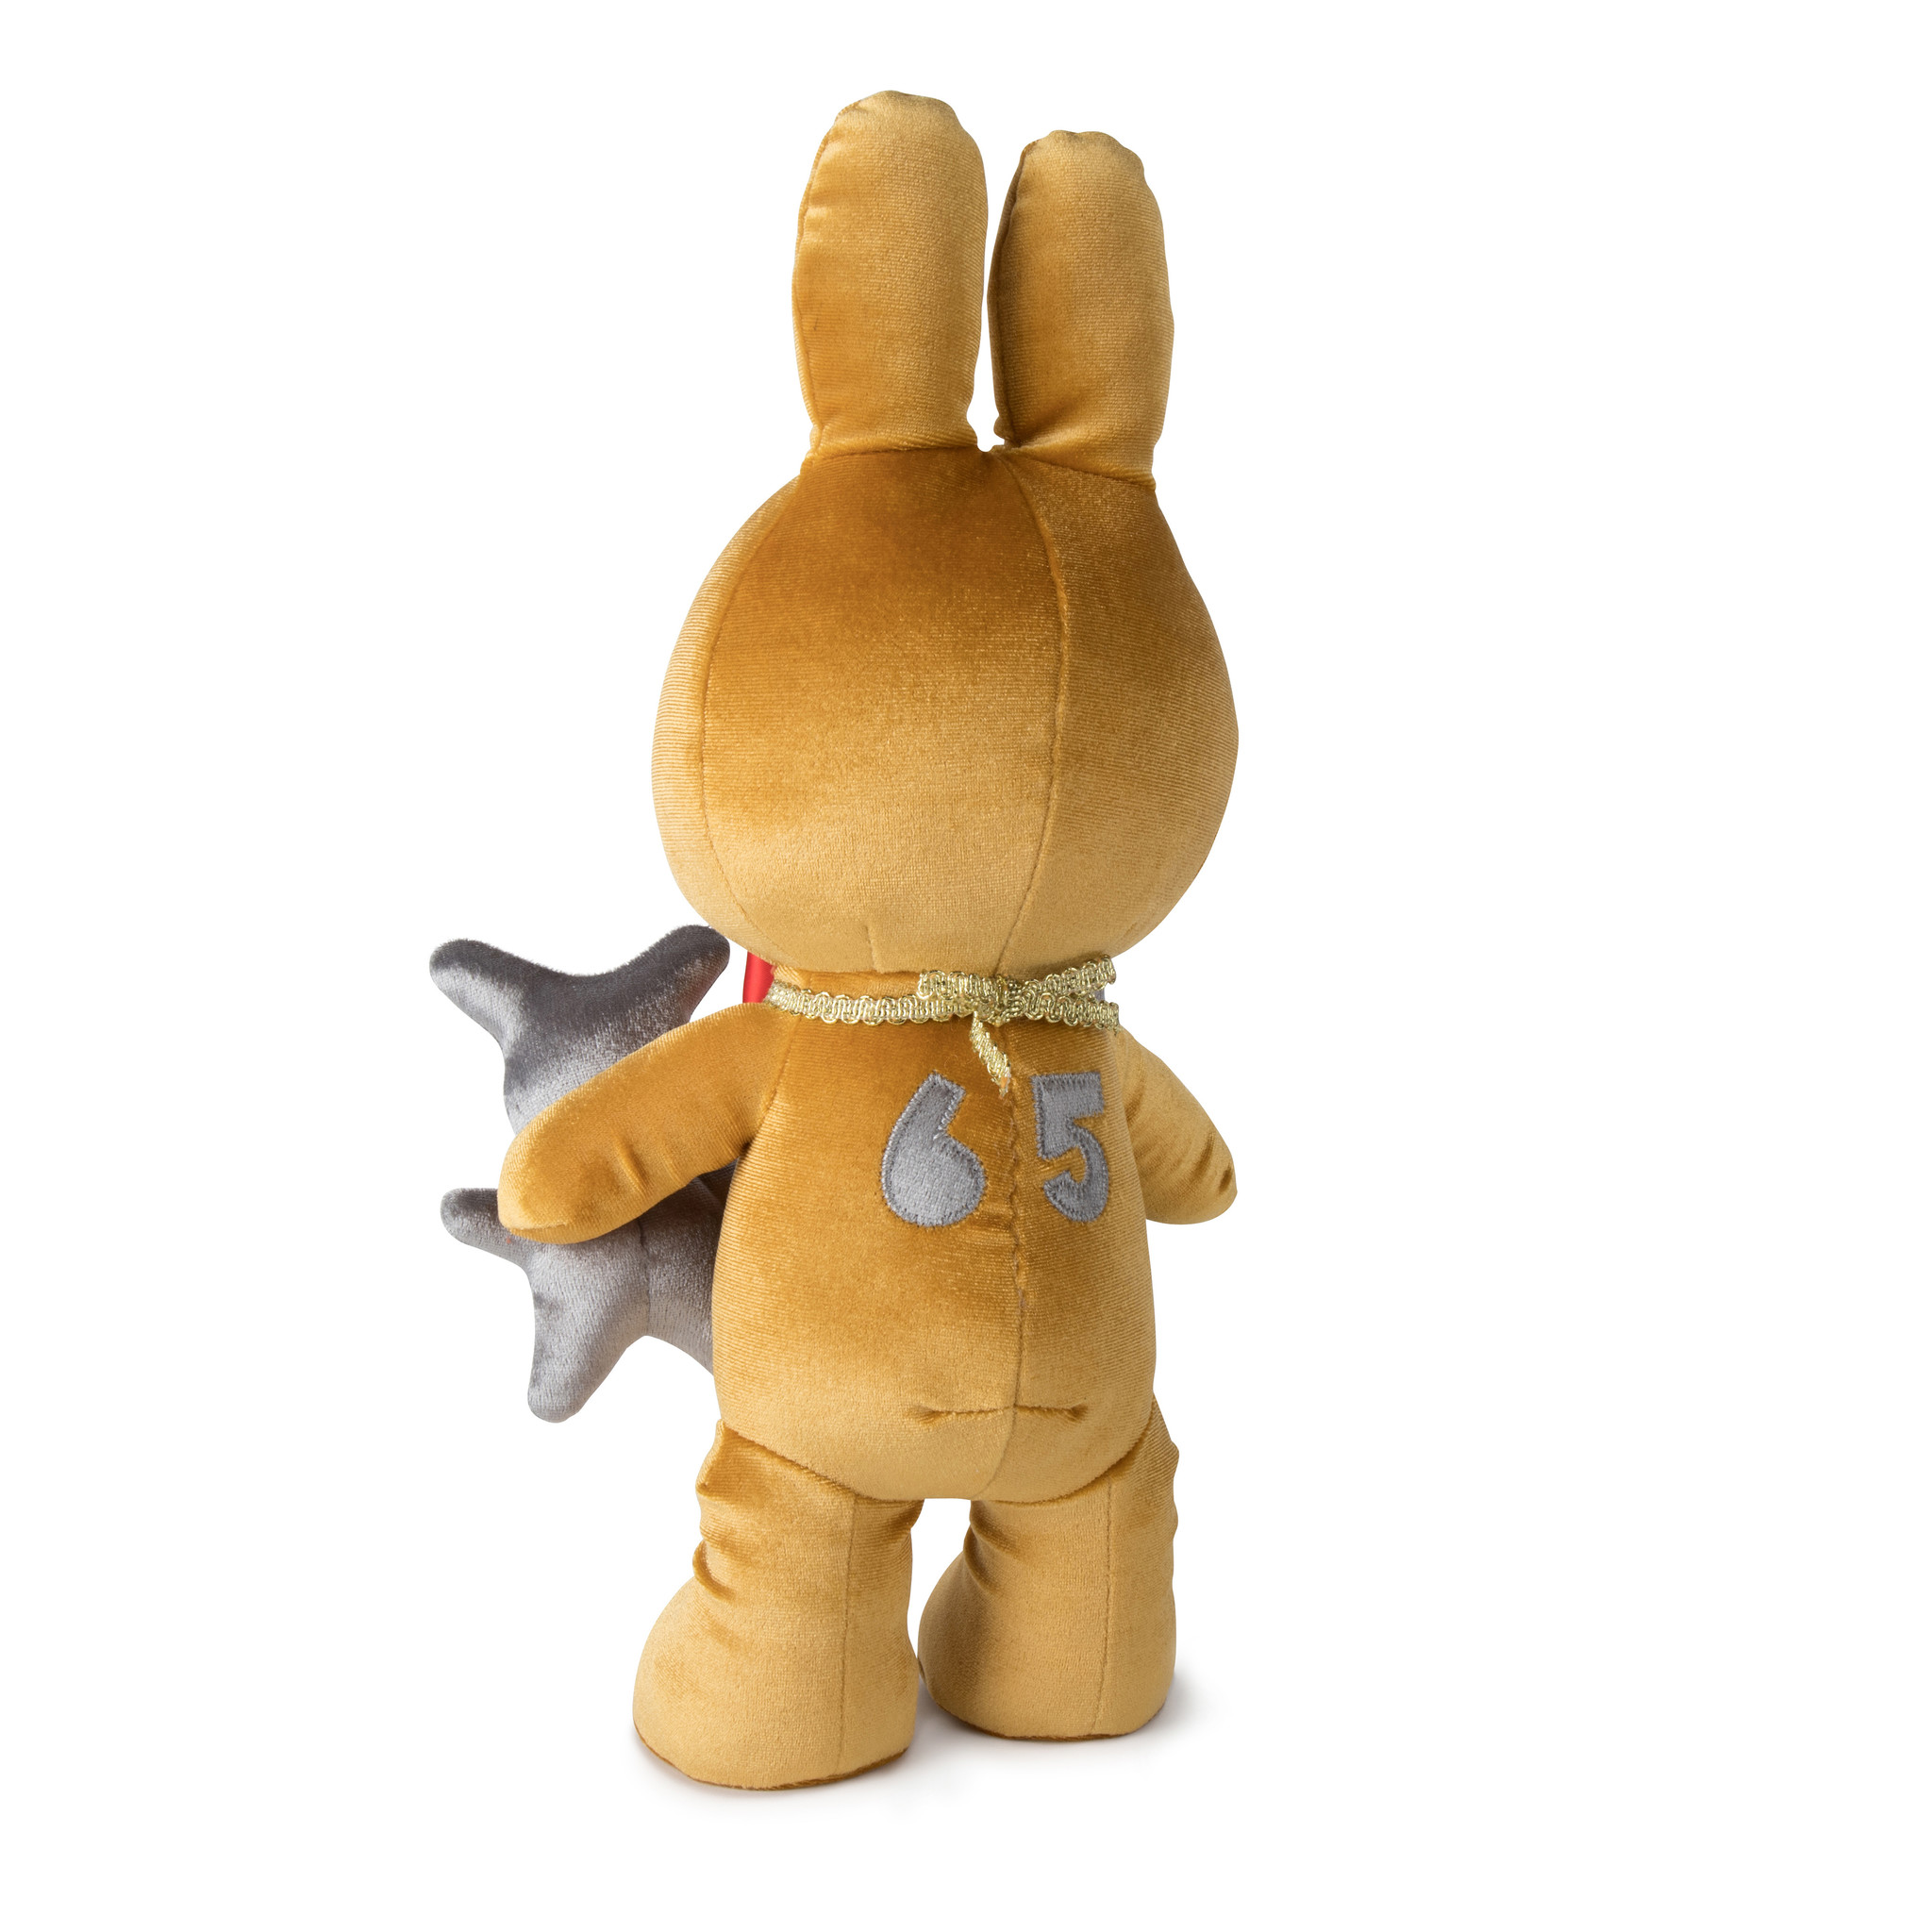 Limited edition Miffy cuddly toy 'Evolution Gold'